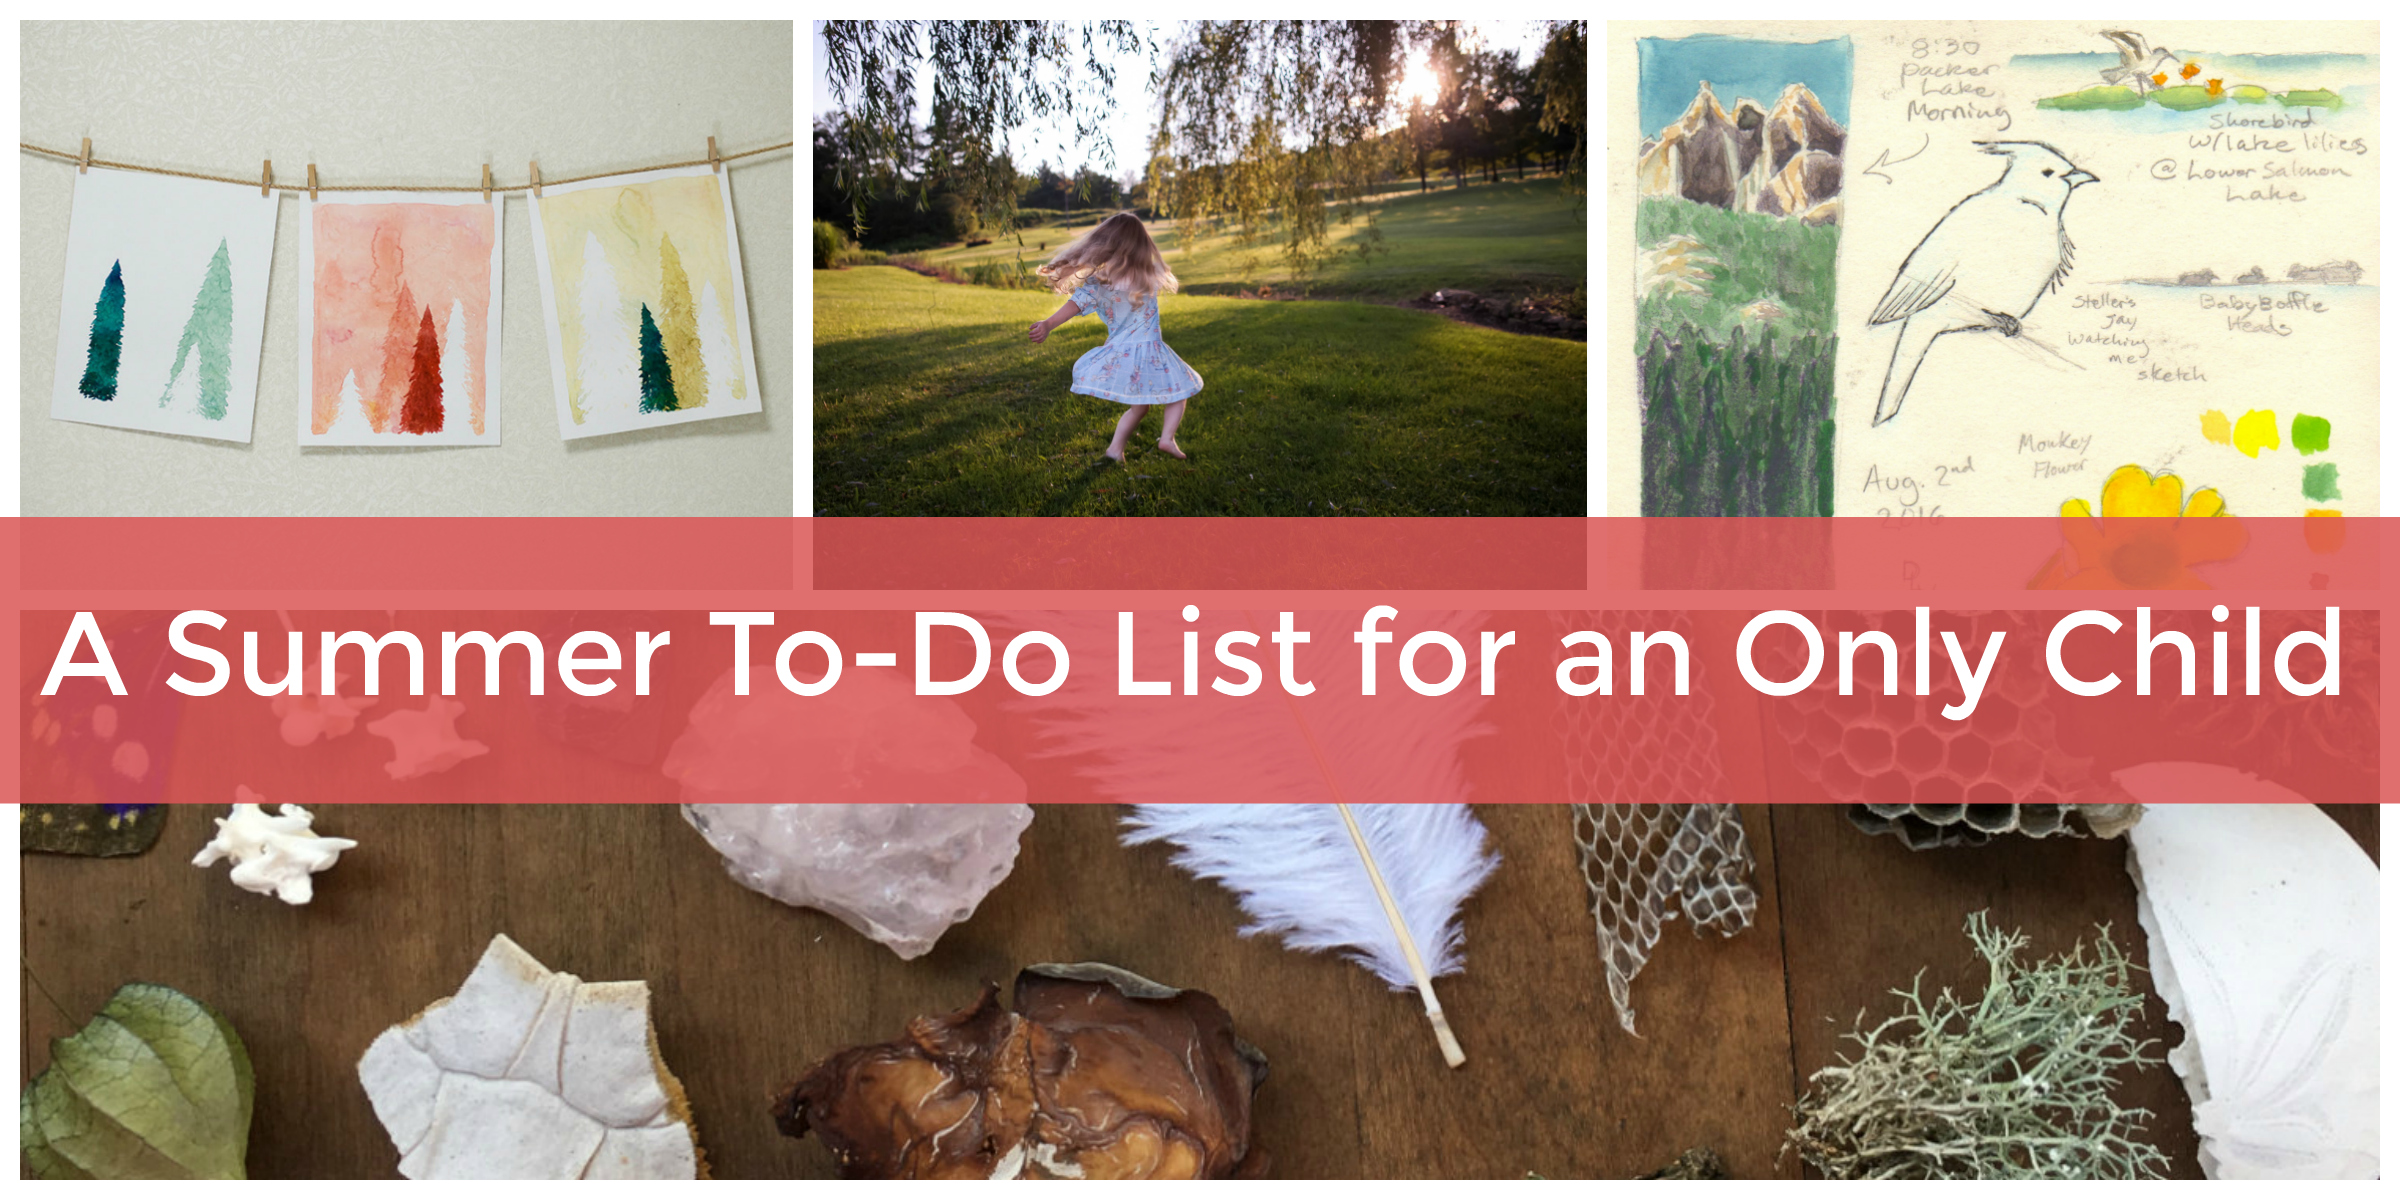 Fun Things For An Only Child To Do Outside This Summer